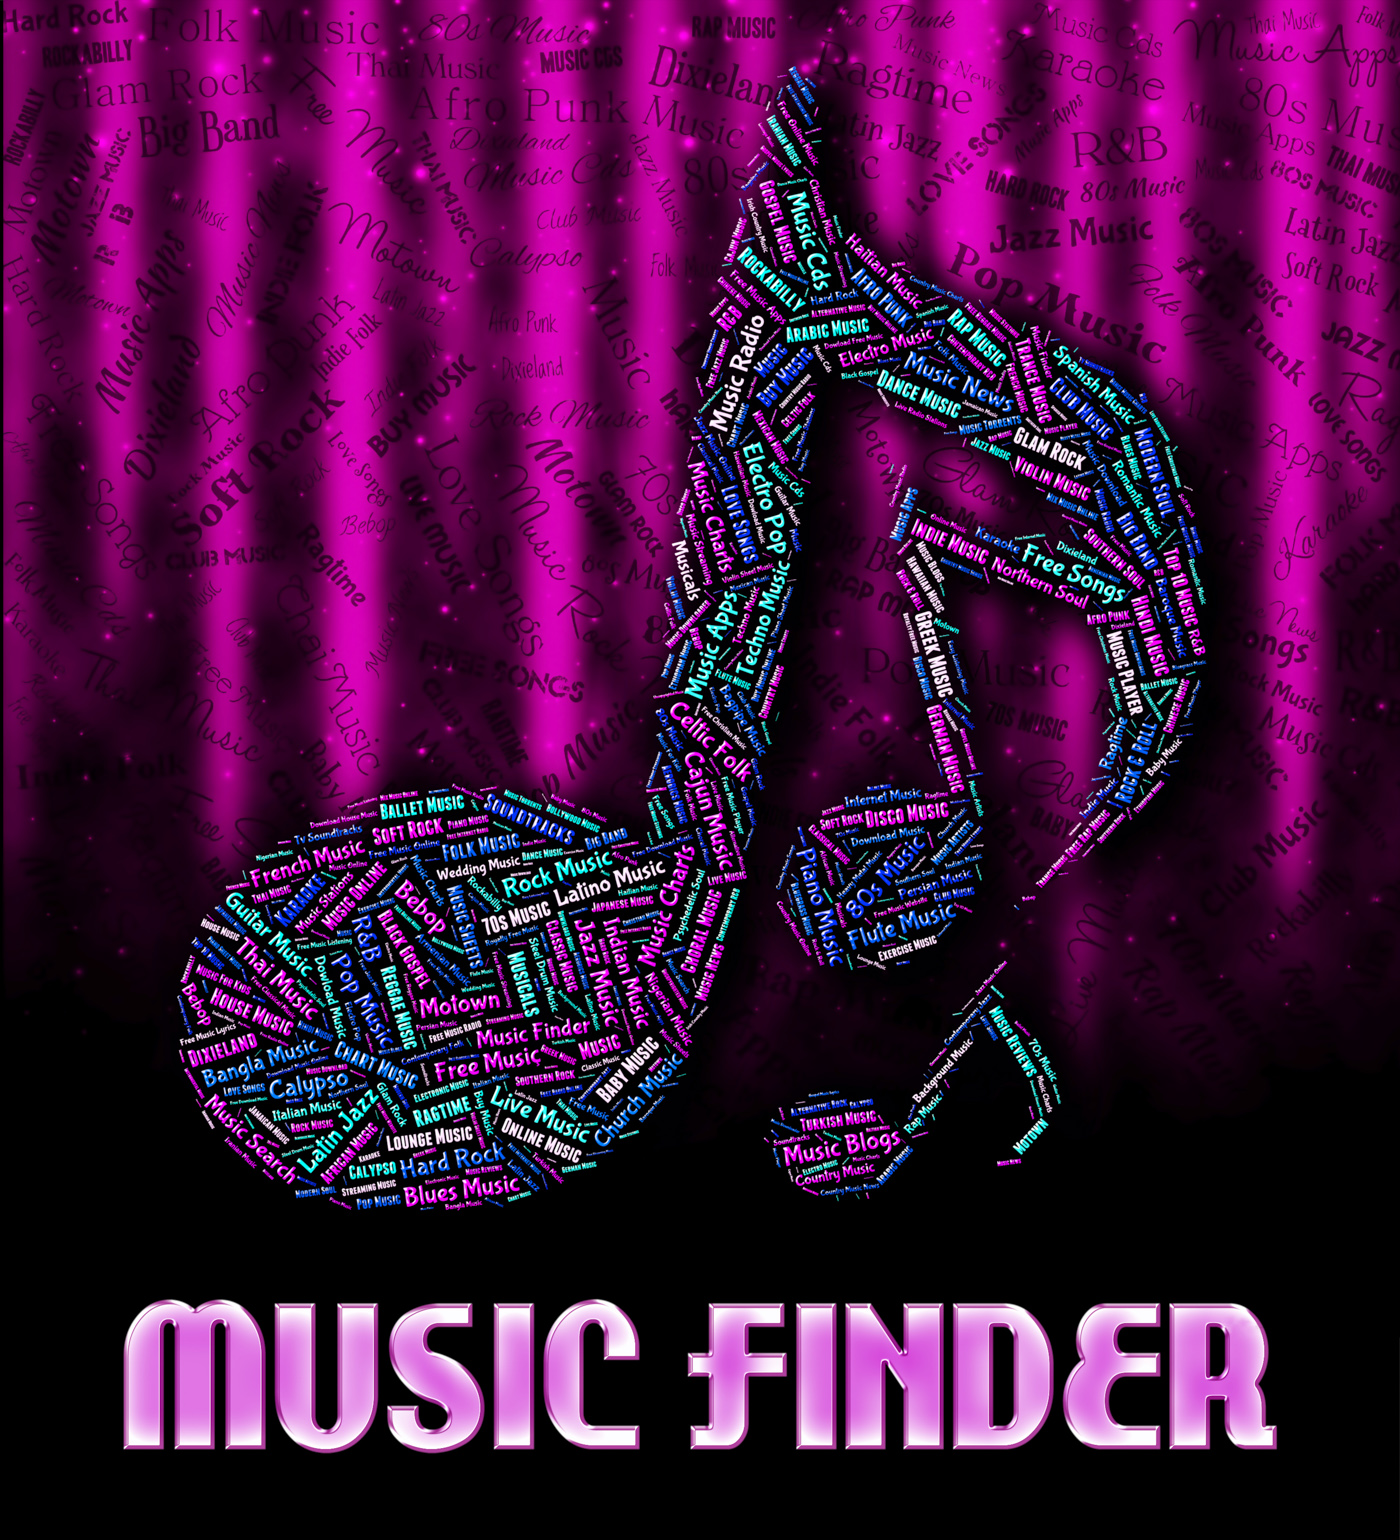 Music finder represents sound track and acoustic photo